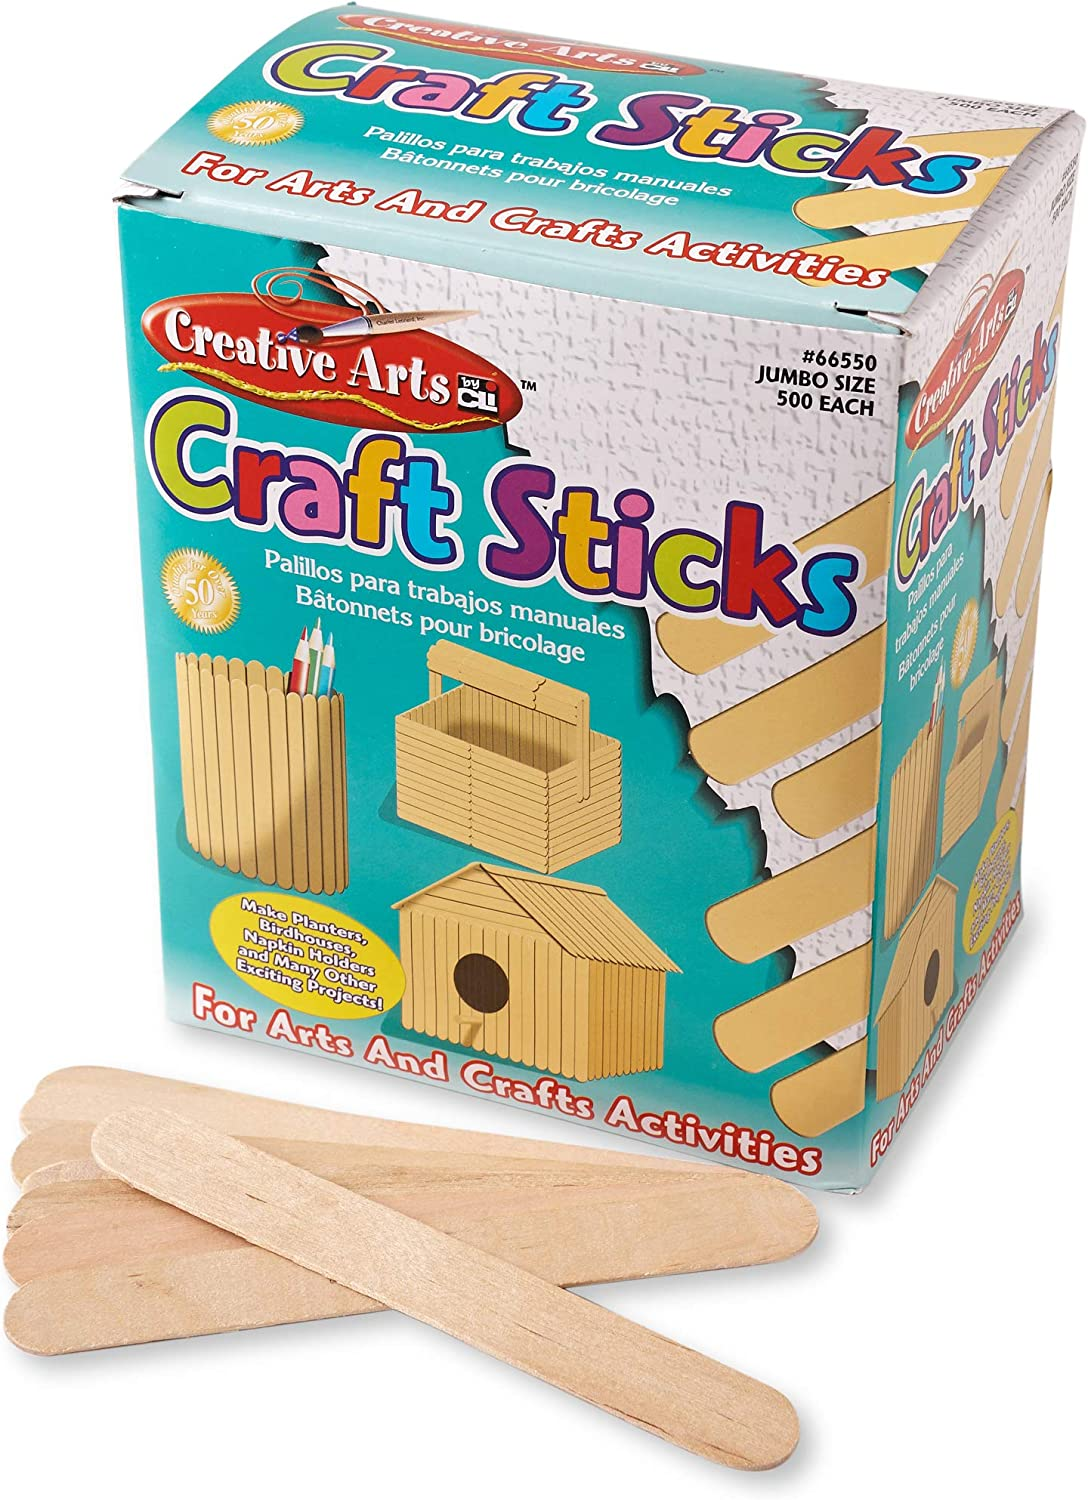 6 Count of 75 Pieces Charles Leonard Craft Sticks Jumbo Ages 3+